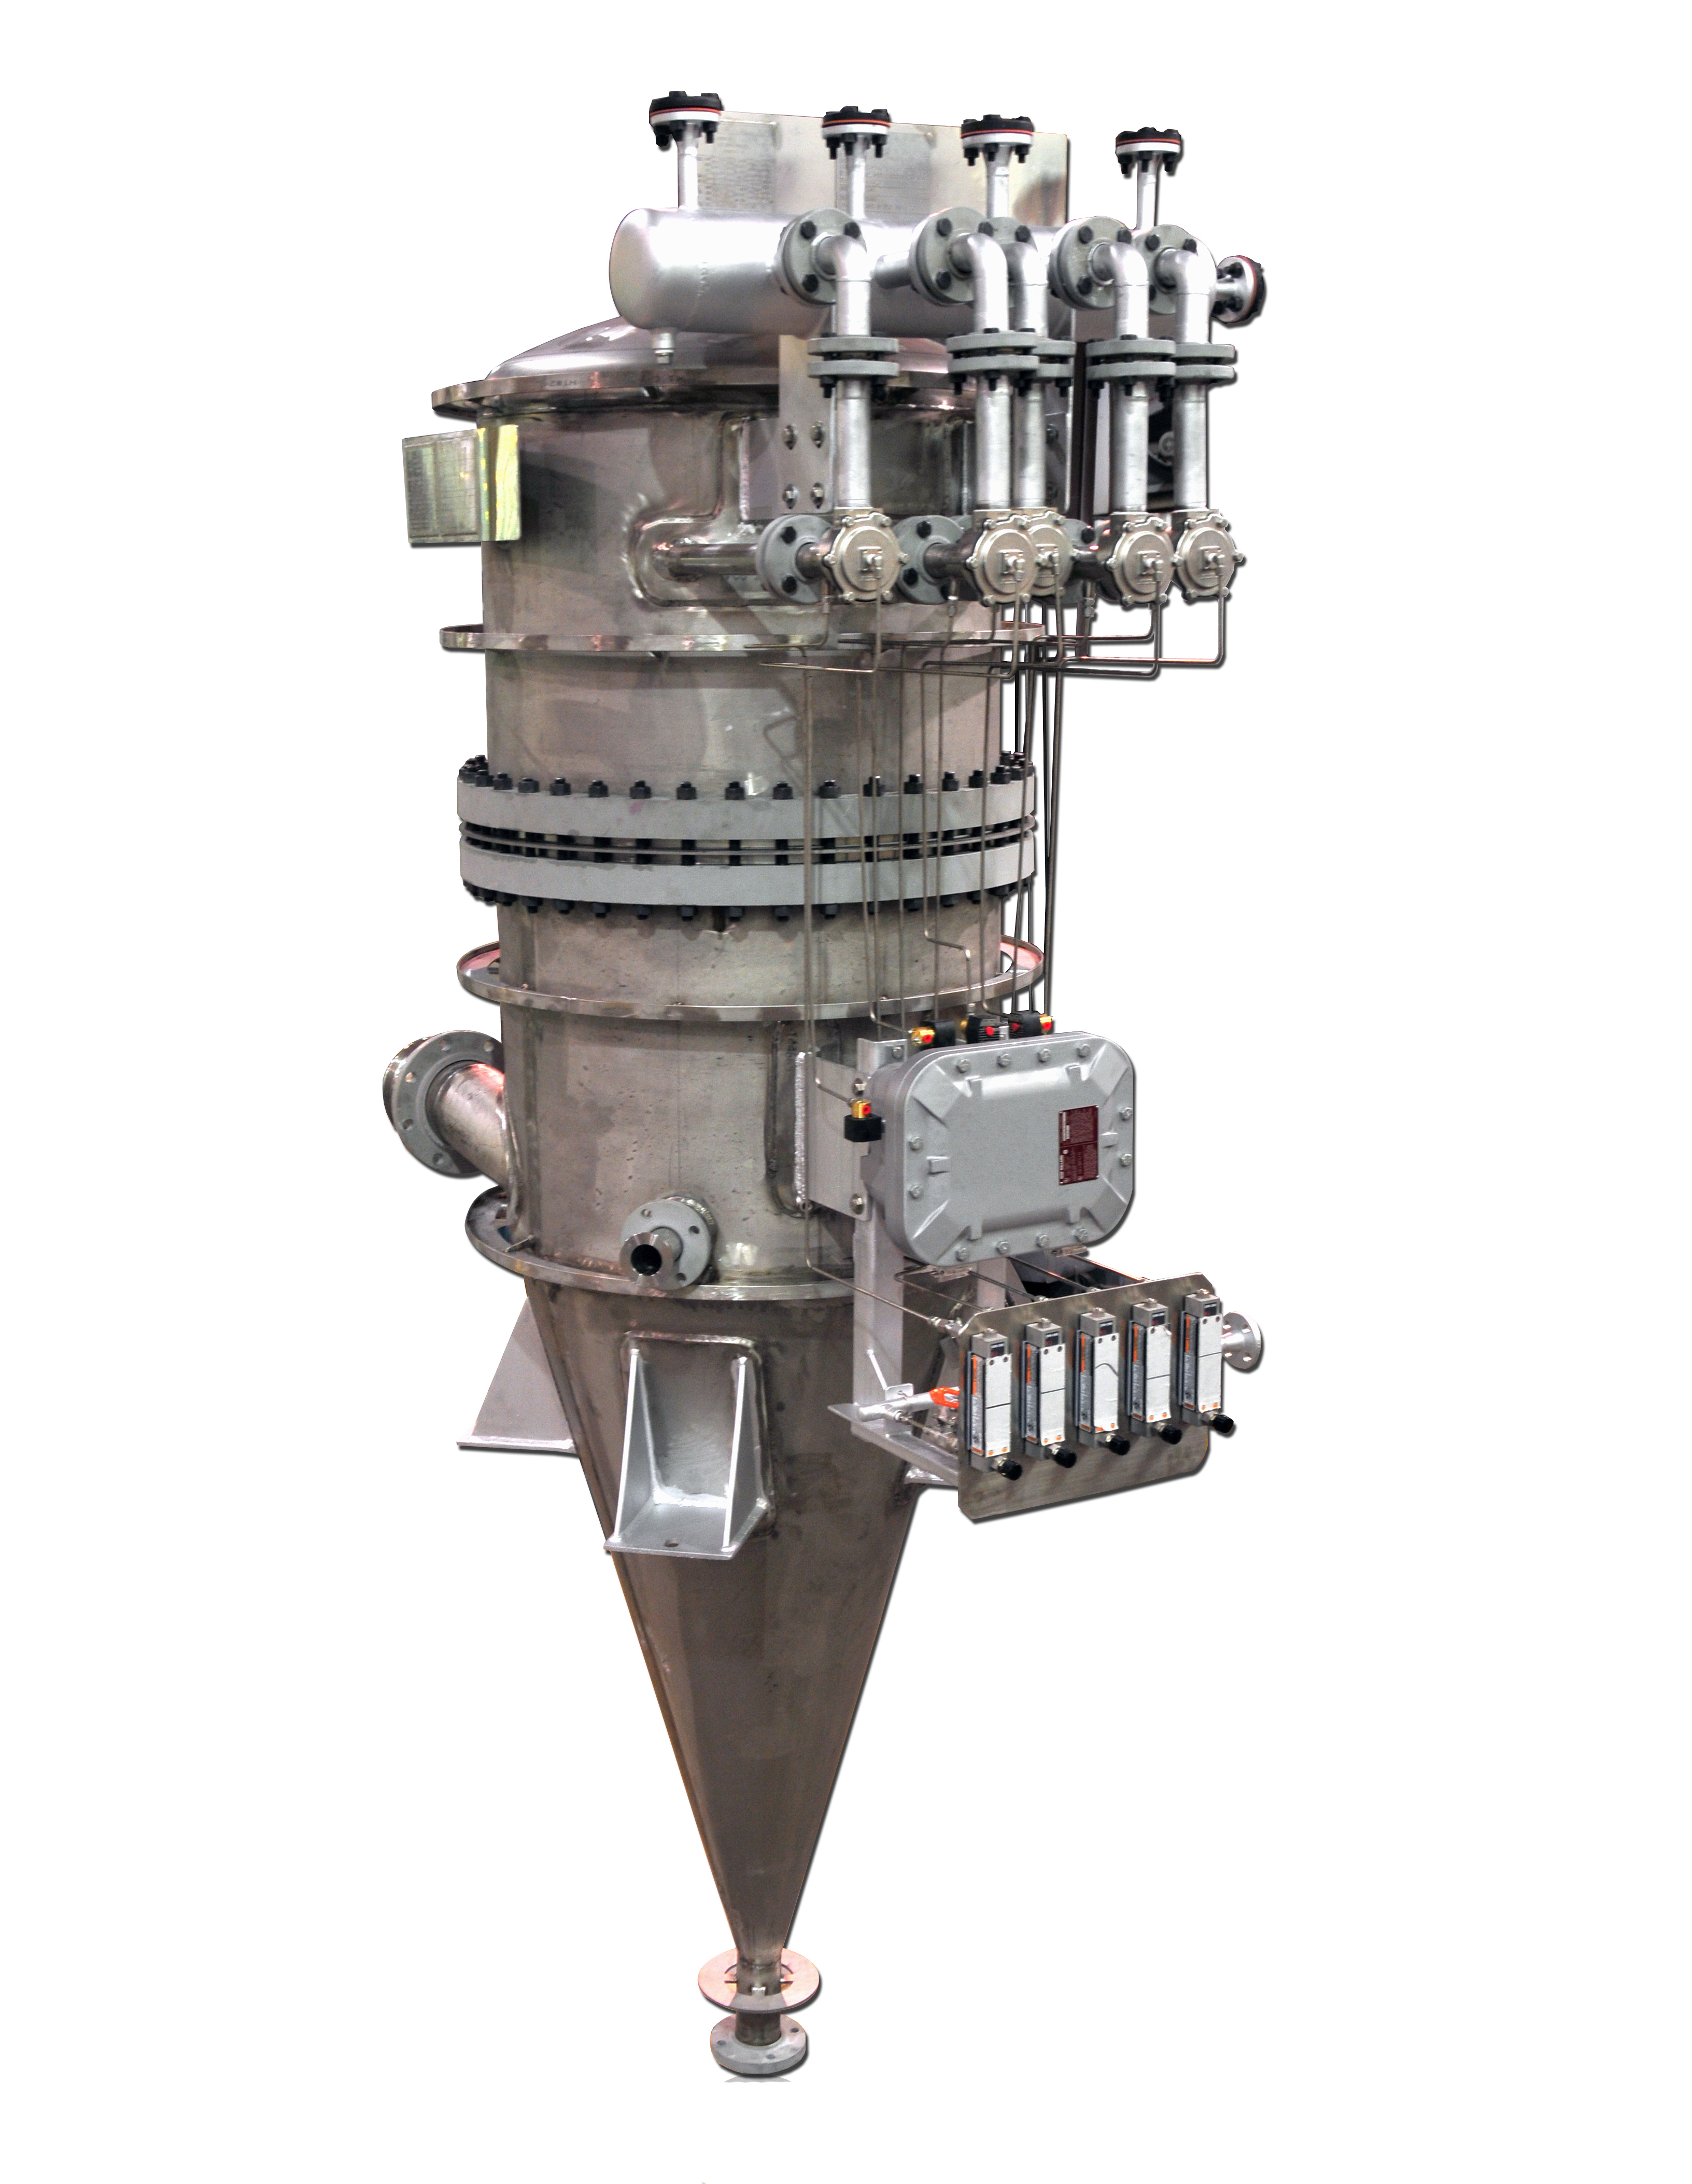 ASME pressure vessels by HOLLOWAY follow the stainless steel ASME code.